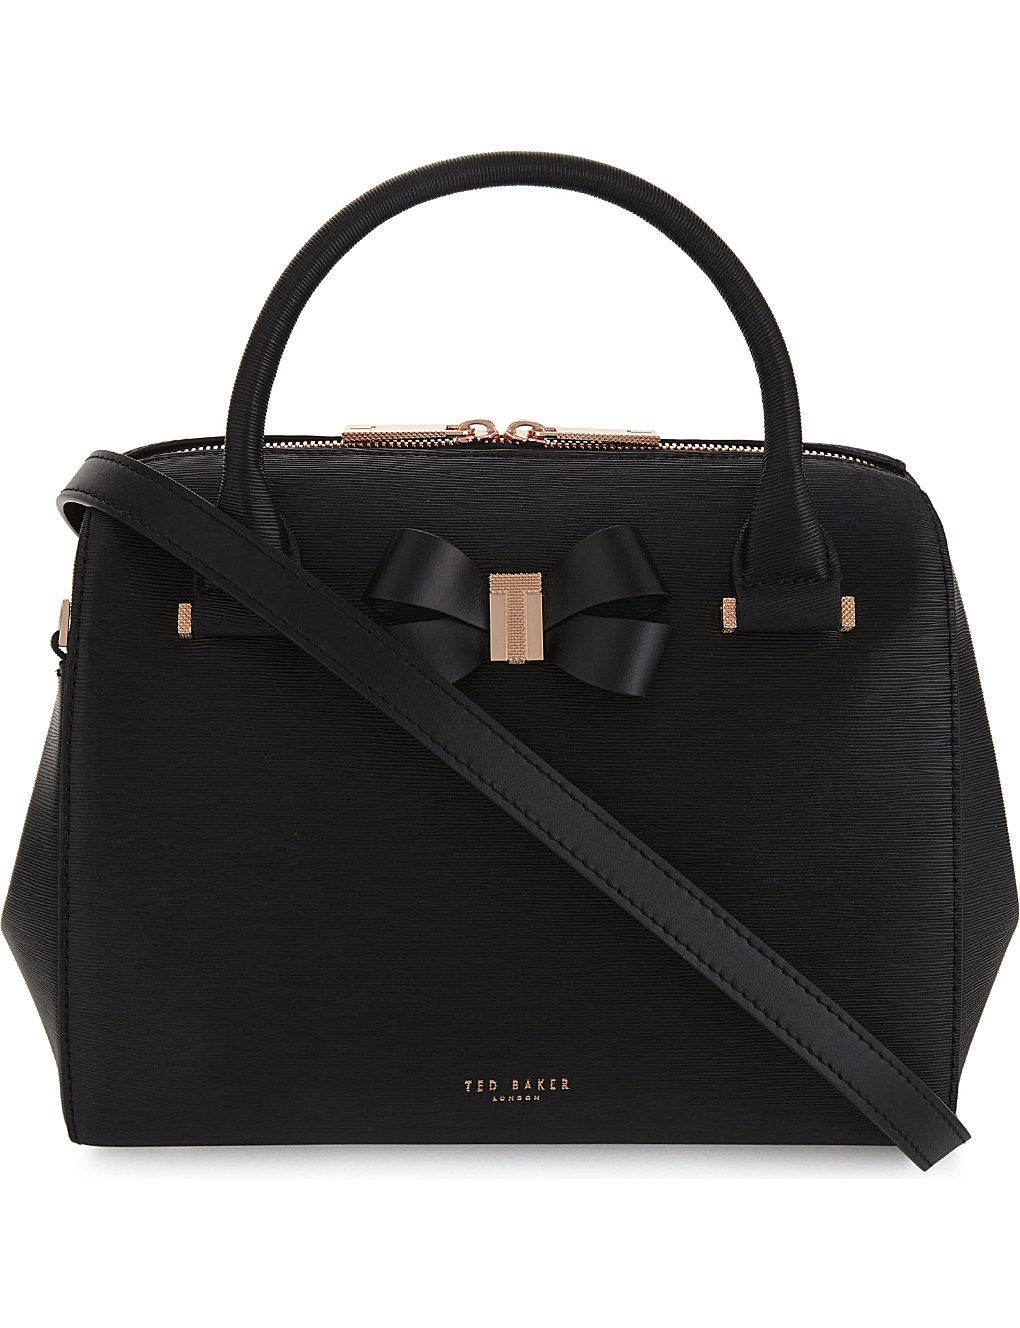 17f46388f TED BAKER Cacia leather bowler bag